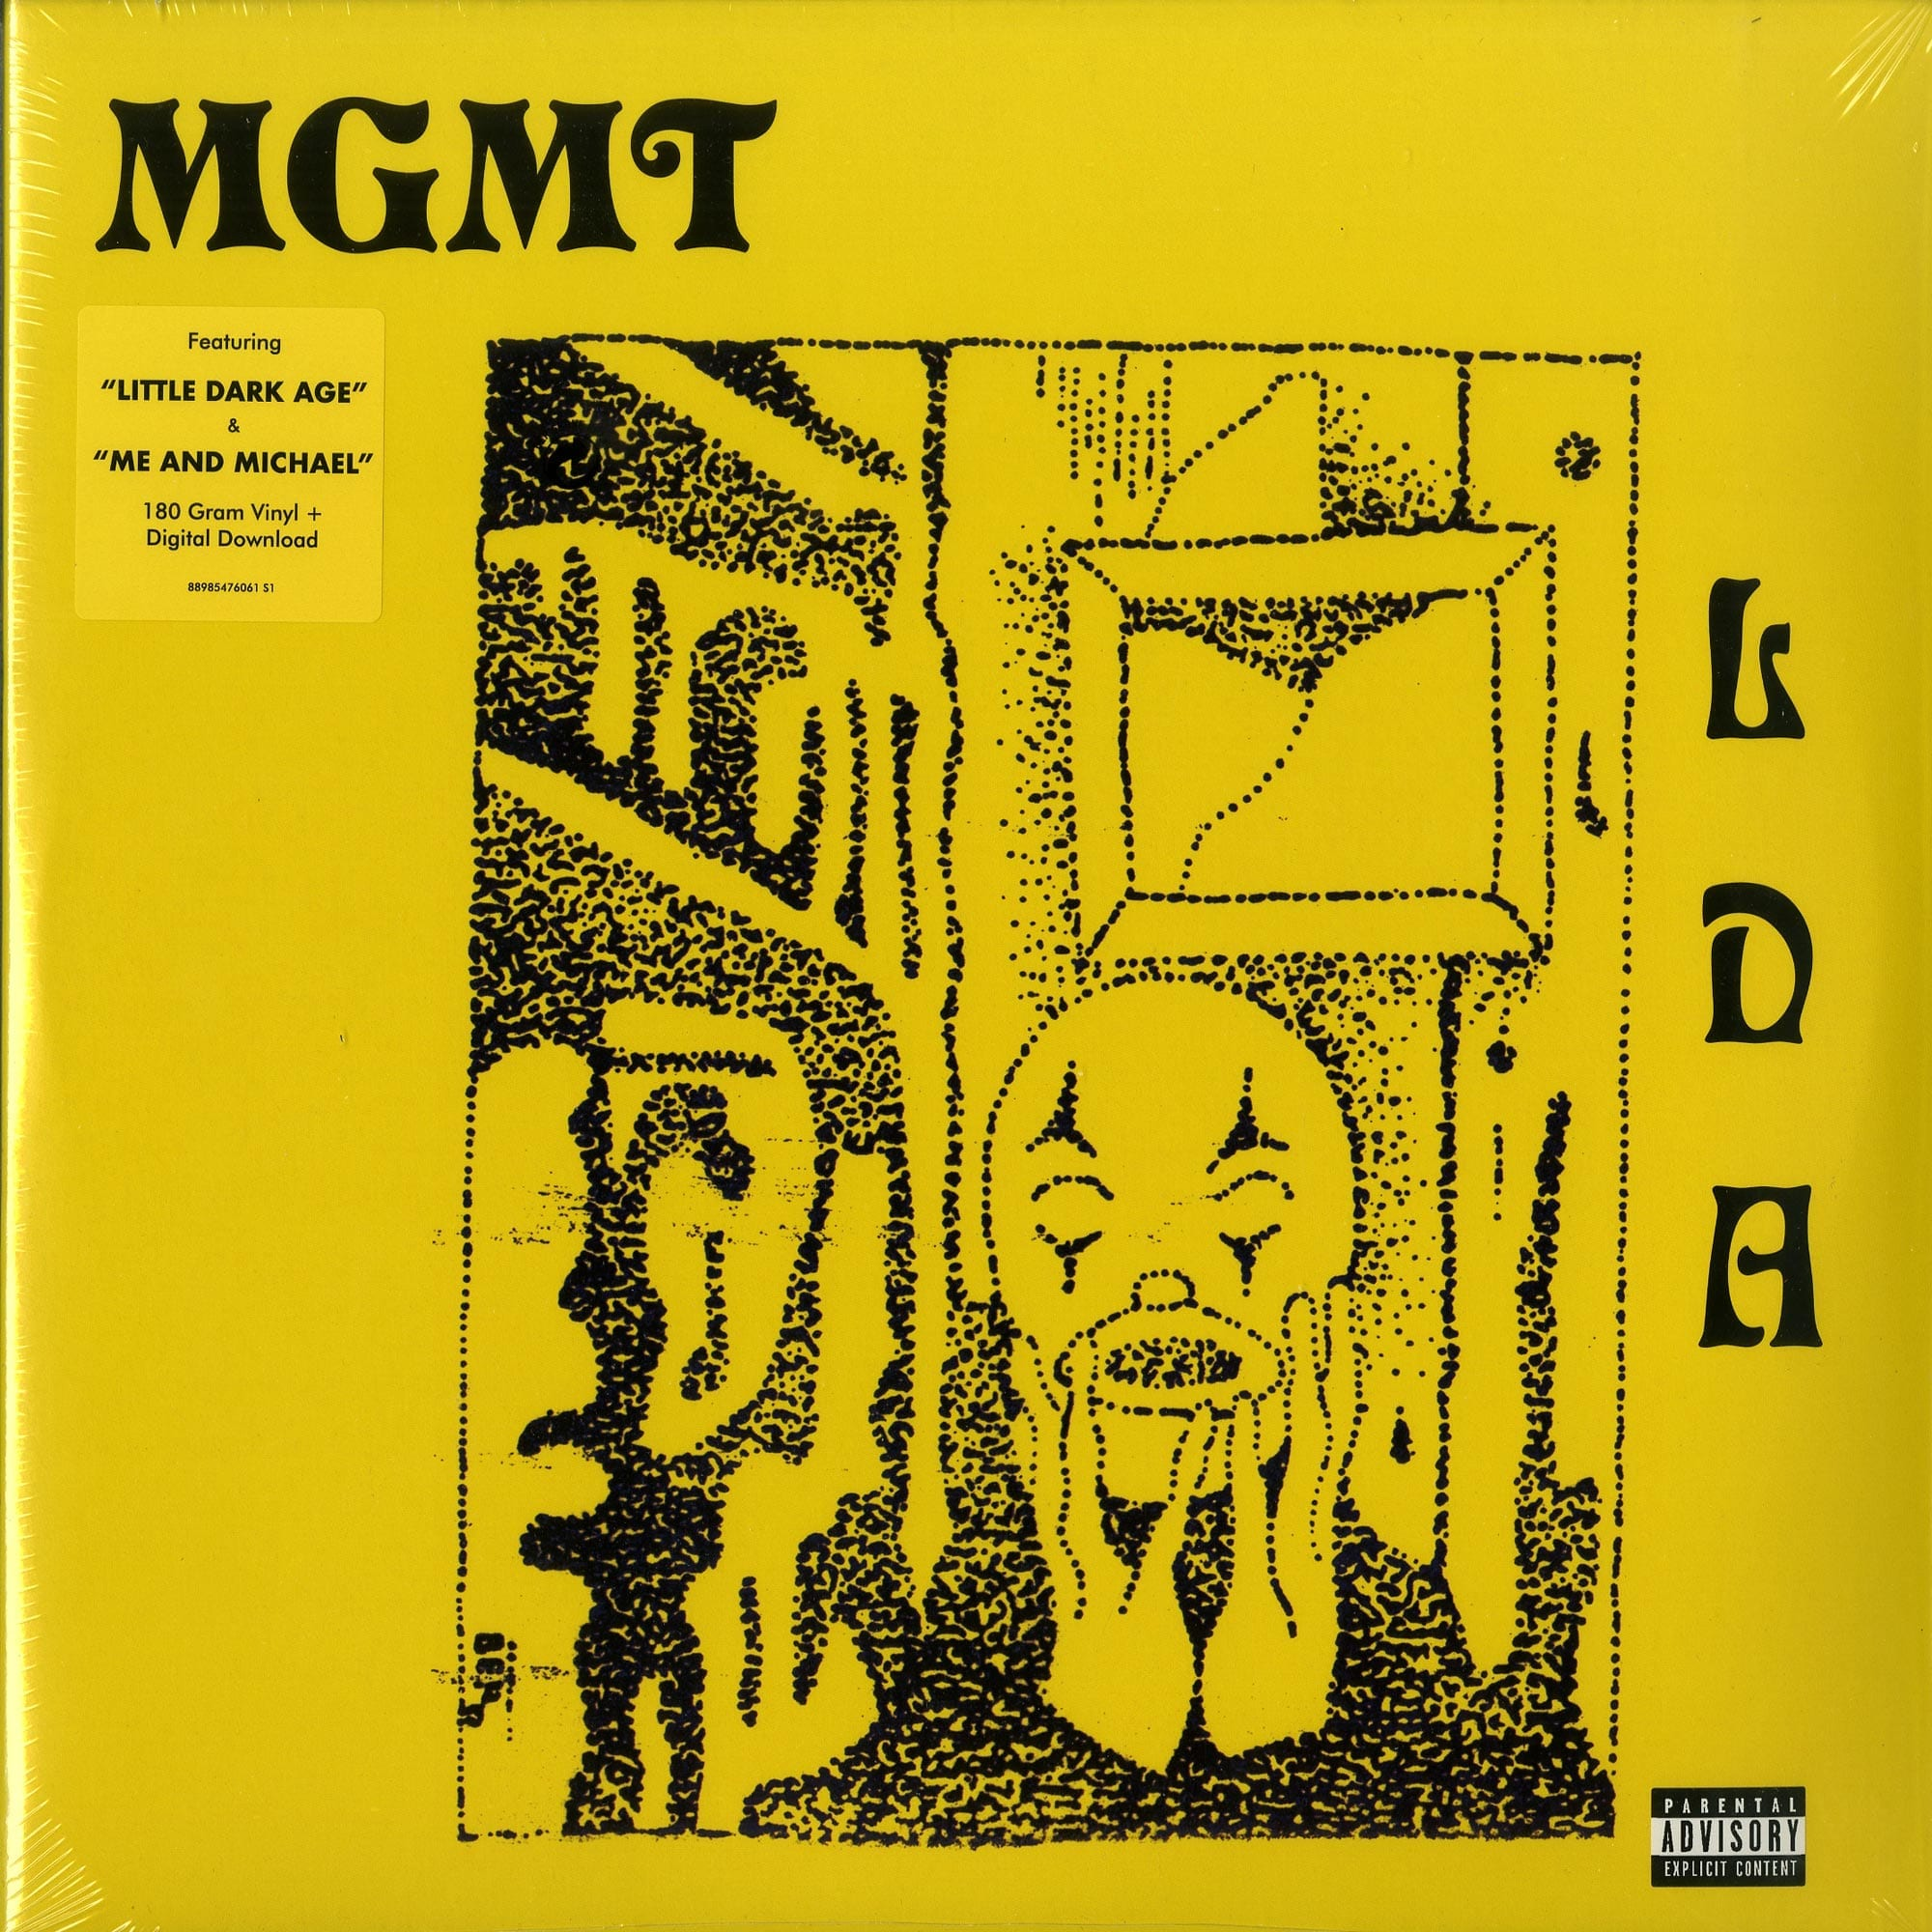 Album Review: Little Dark Age // MGMT